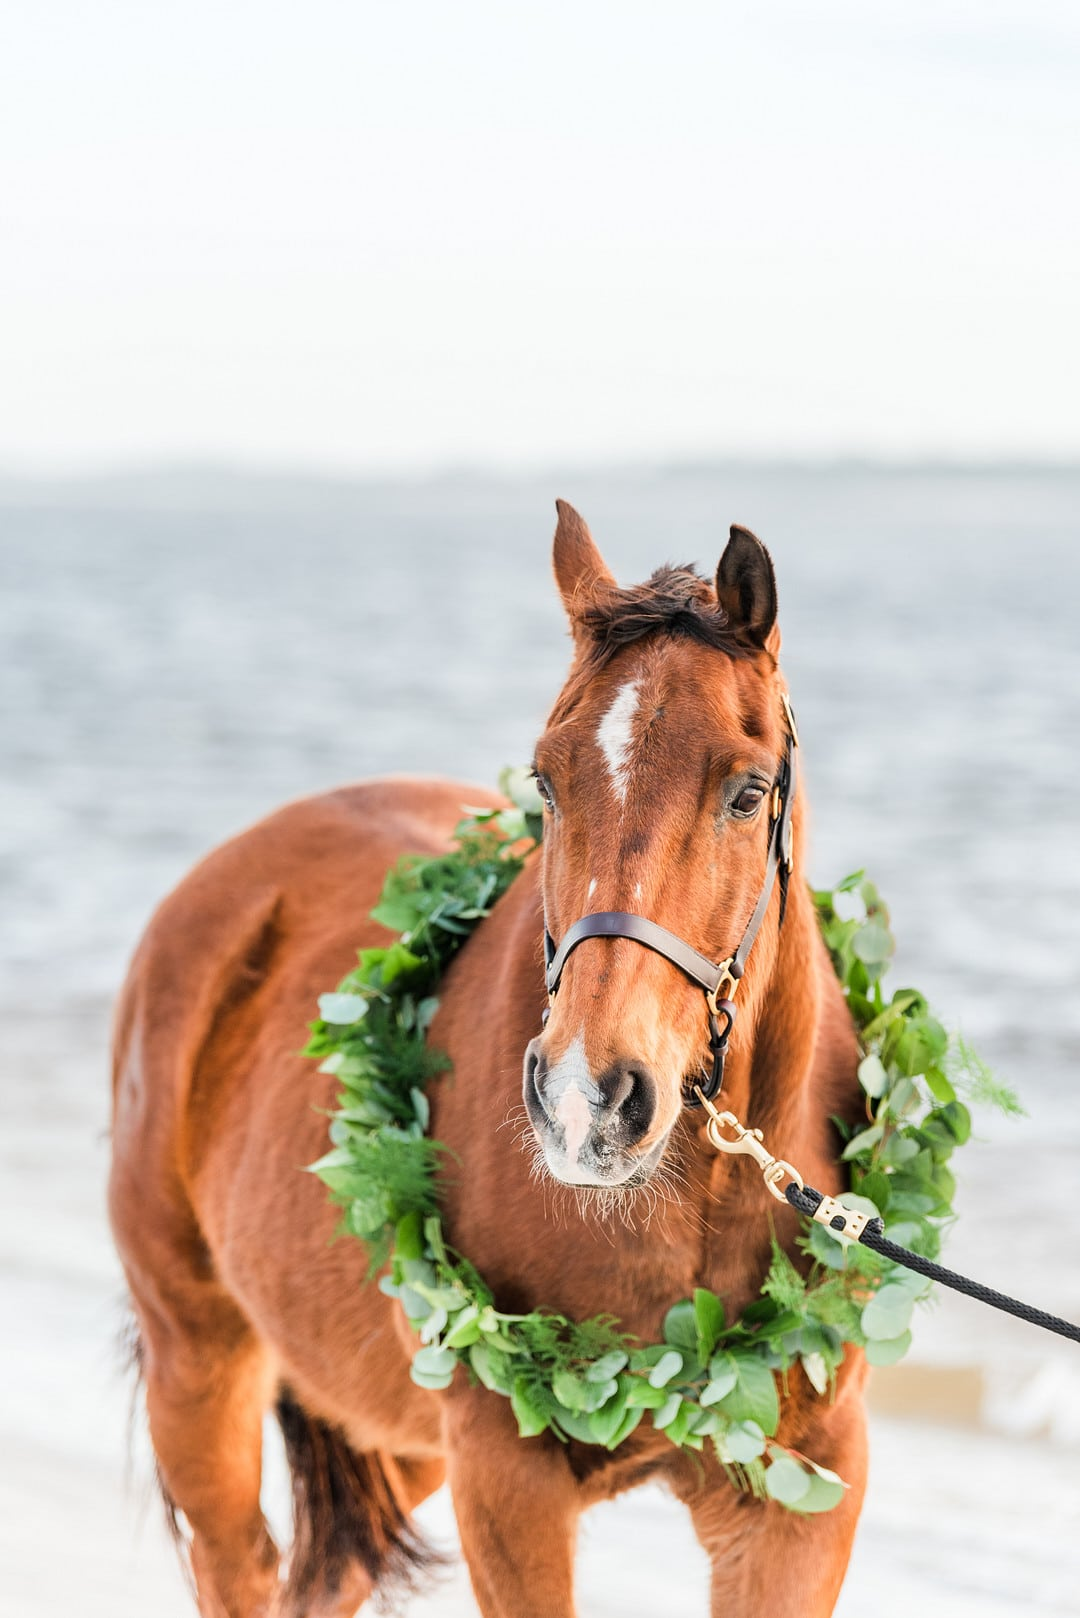 Romantic, Spring Styled Wedding with Horses on the Beach_Christine Austin Photography_©christineaustinphotography_2021_RomanticBeachStyledShoot_Horses_66_low